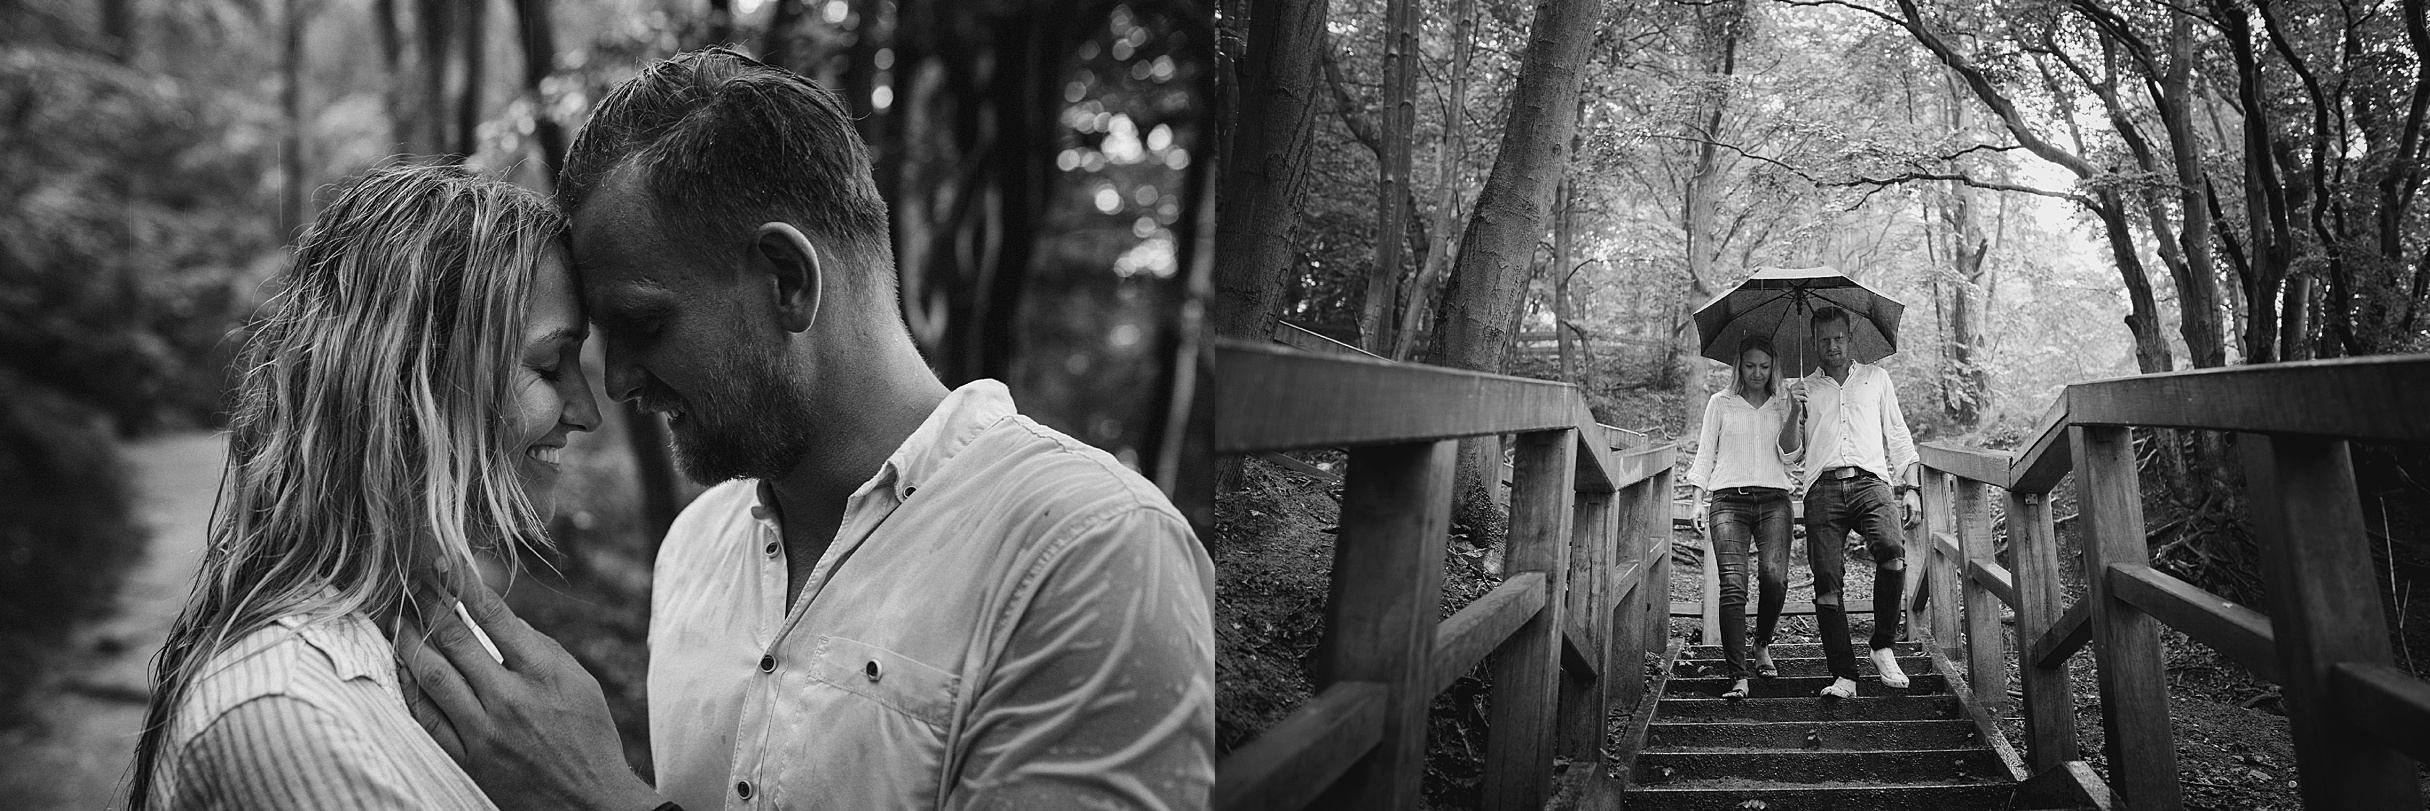 Wicklow-Engagement-Session-Photographer-Dublin